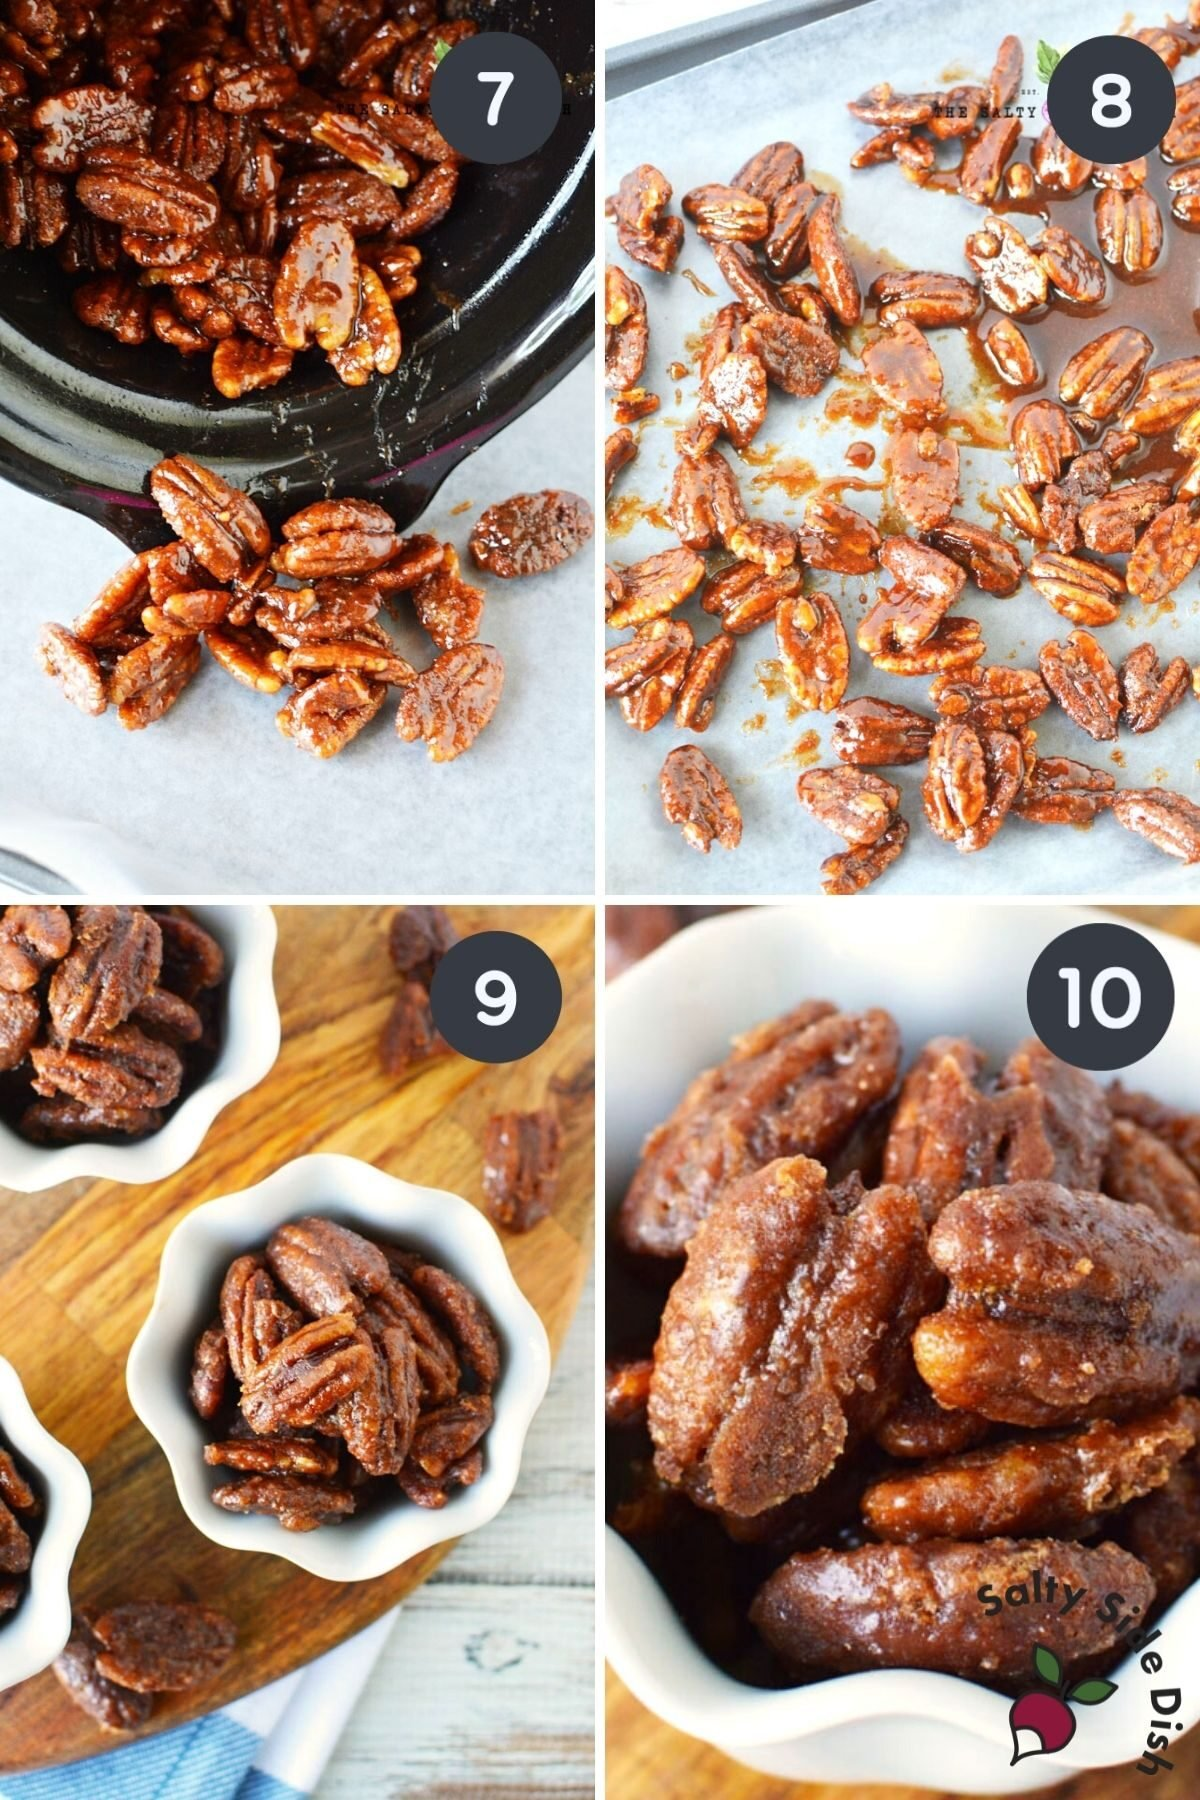 step by step of 4 images showing how to harden candied pecans